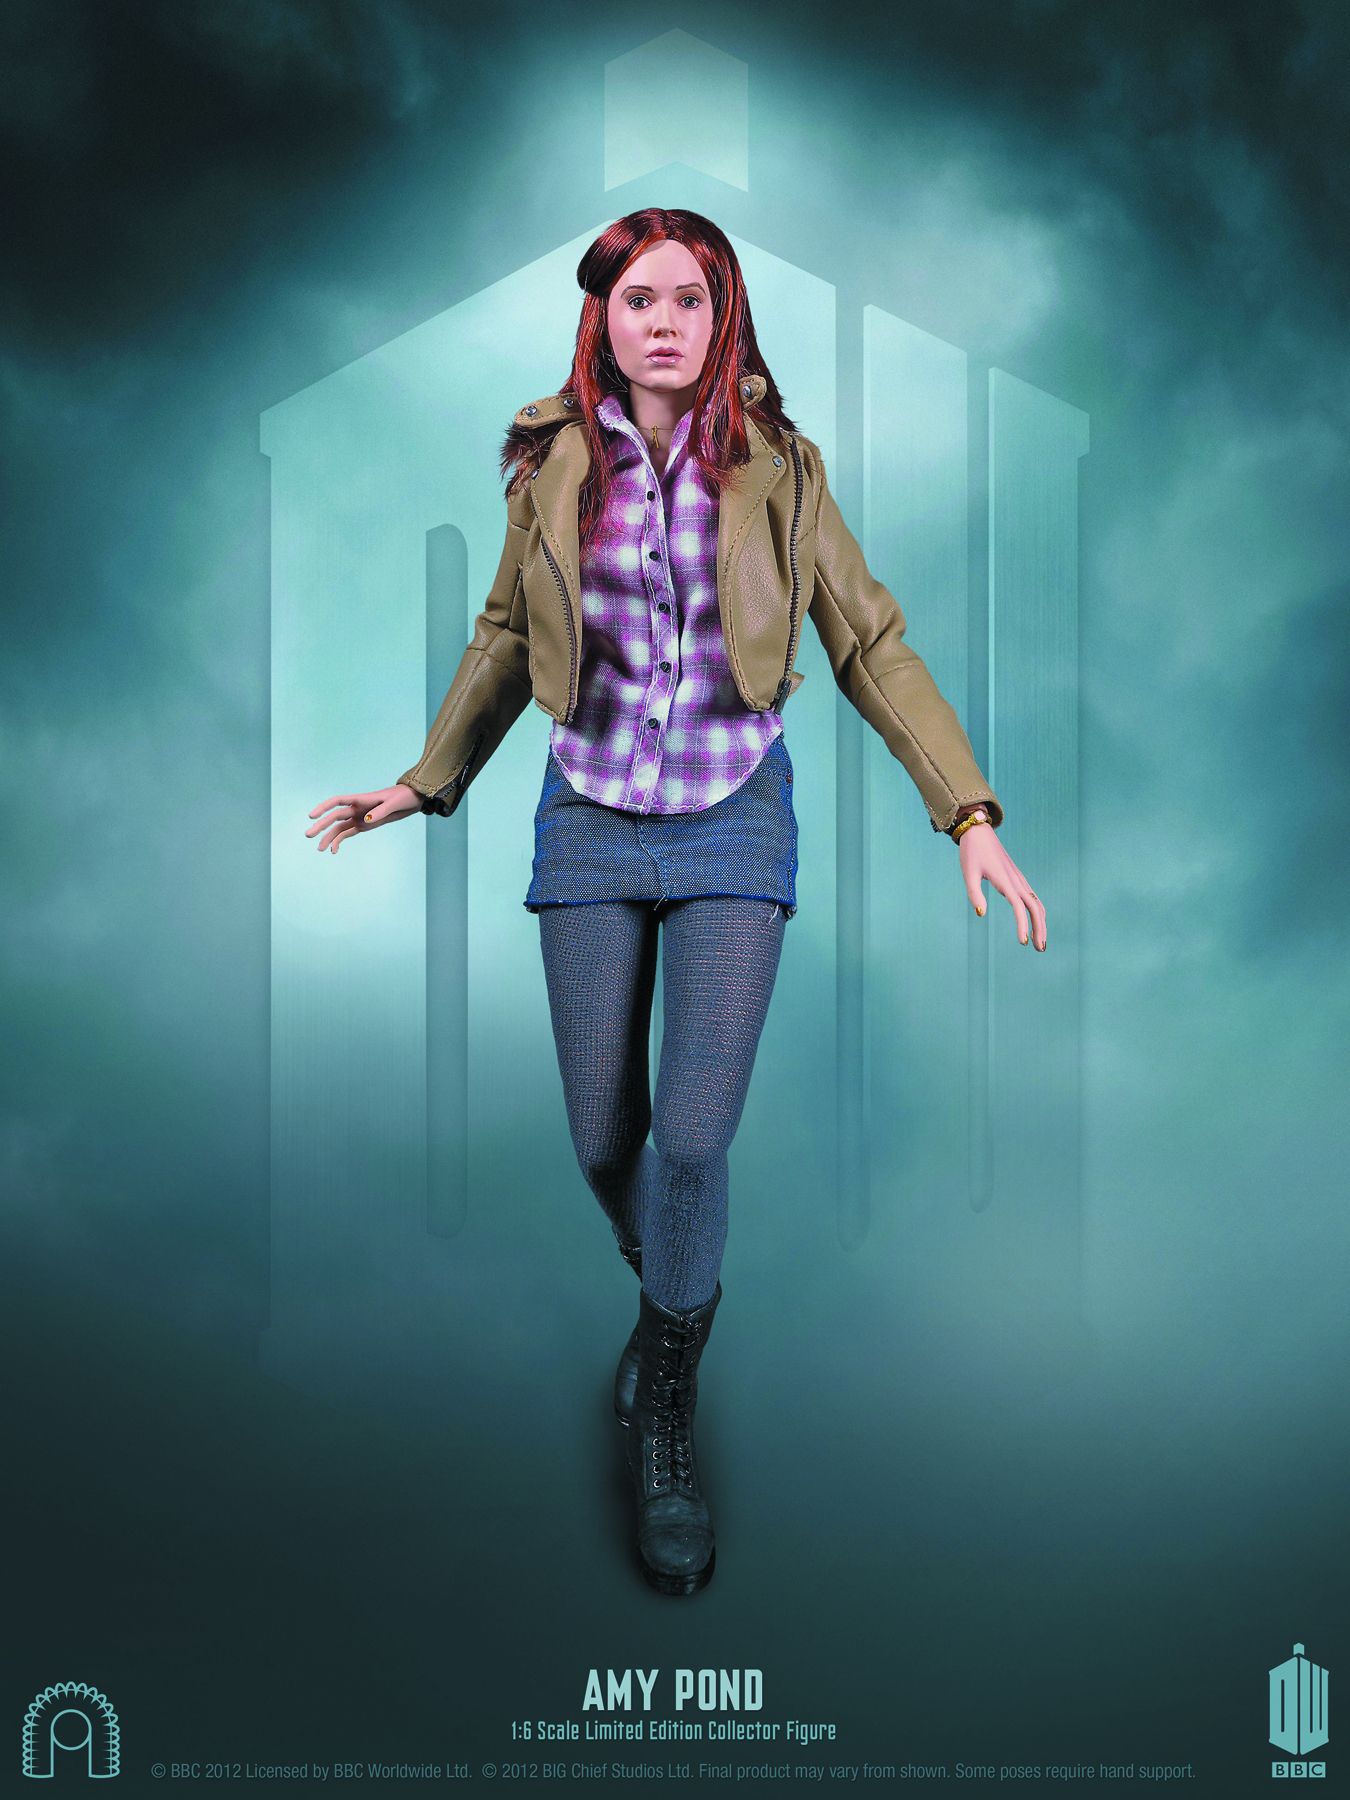 DOCTOR WHO AMY POND 1/6 SCALE FIG